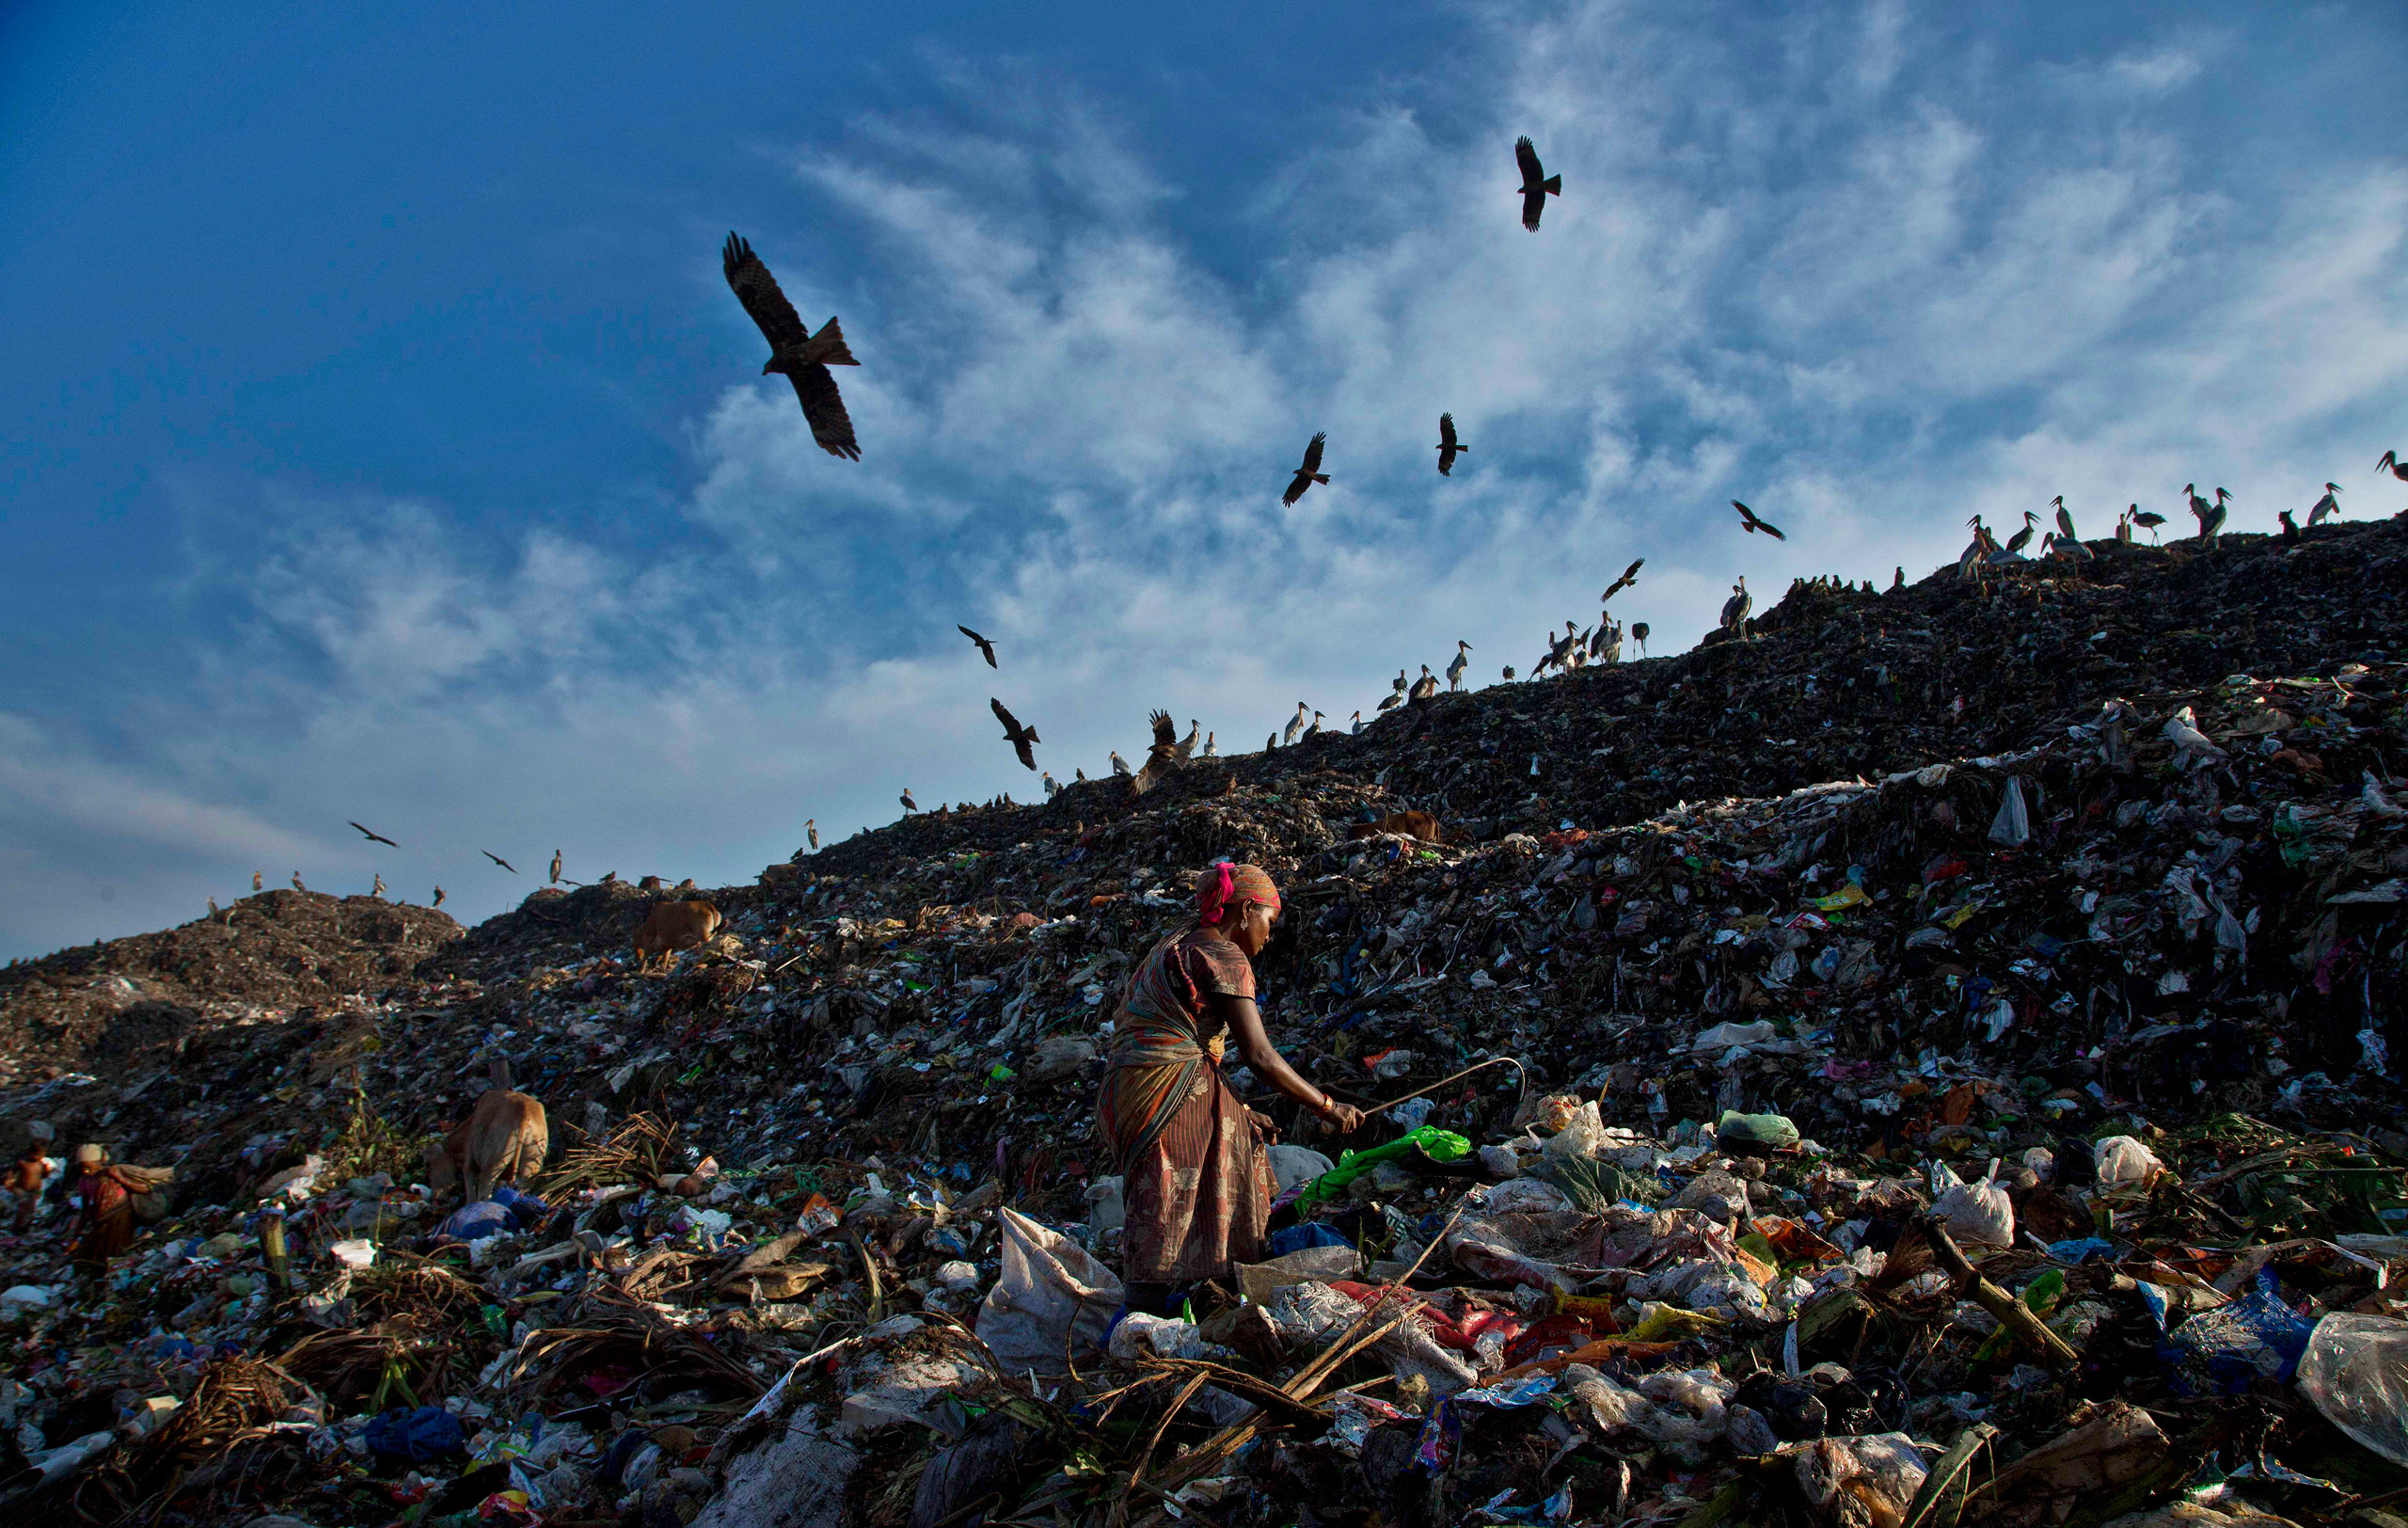 A woman searches for recyclable material at a garbage dumping site on the outskirts of Gauhati, India, on Oct. 2, 2016.